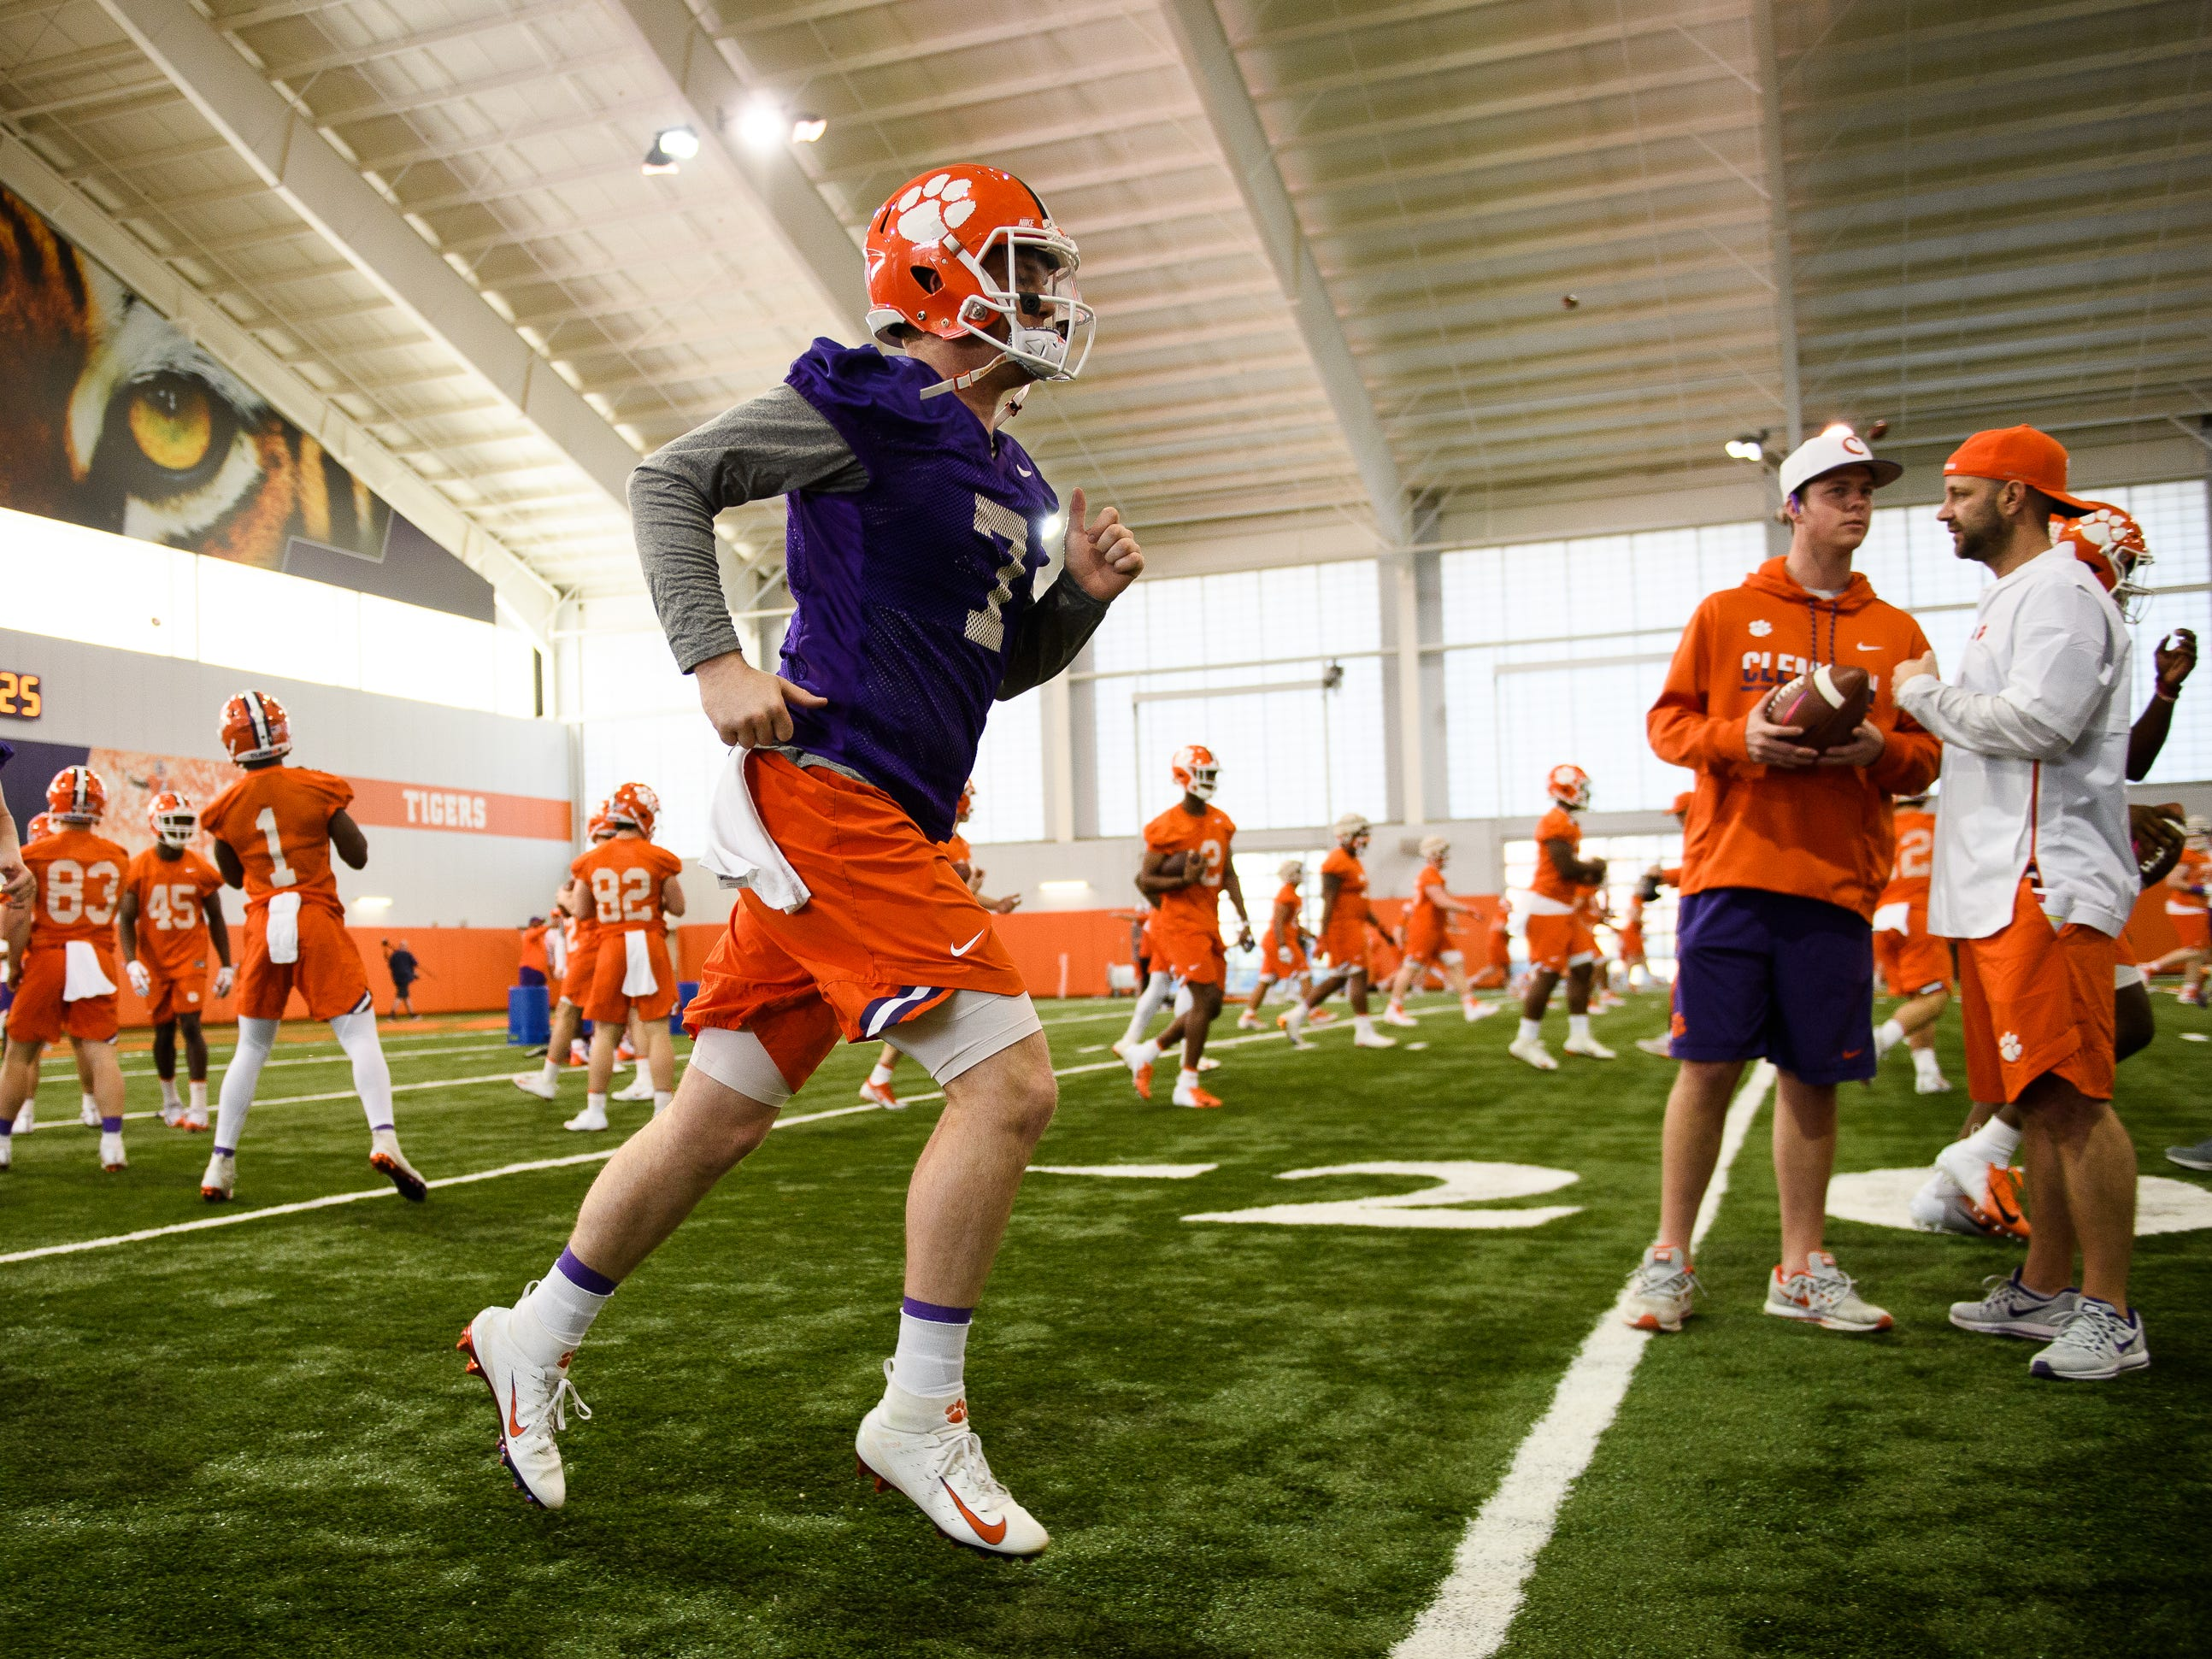 Clemson quarterback Chase Brice (7) runs during practice at the Allen Reeves Football Complex on Wednesday, Feb. 27, 2019.